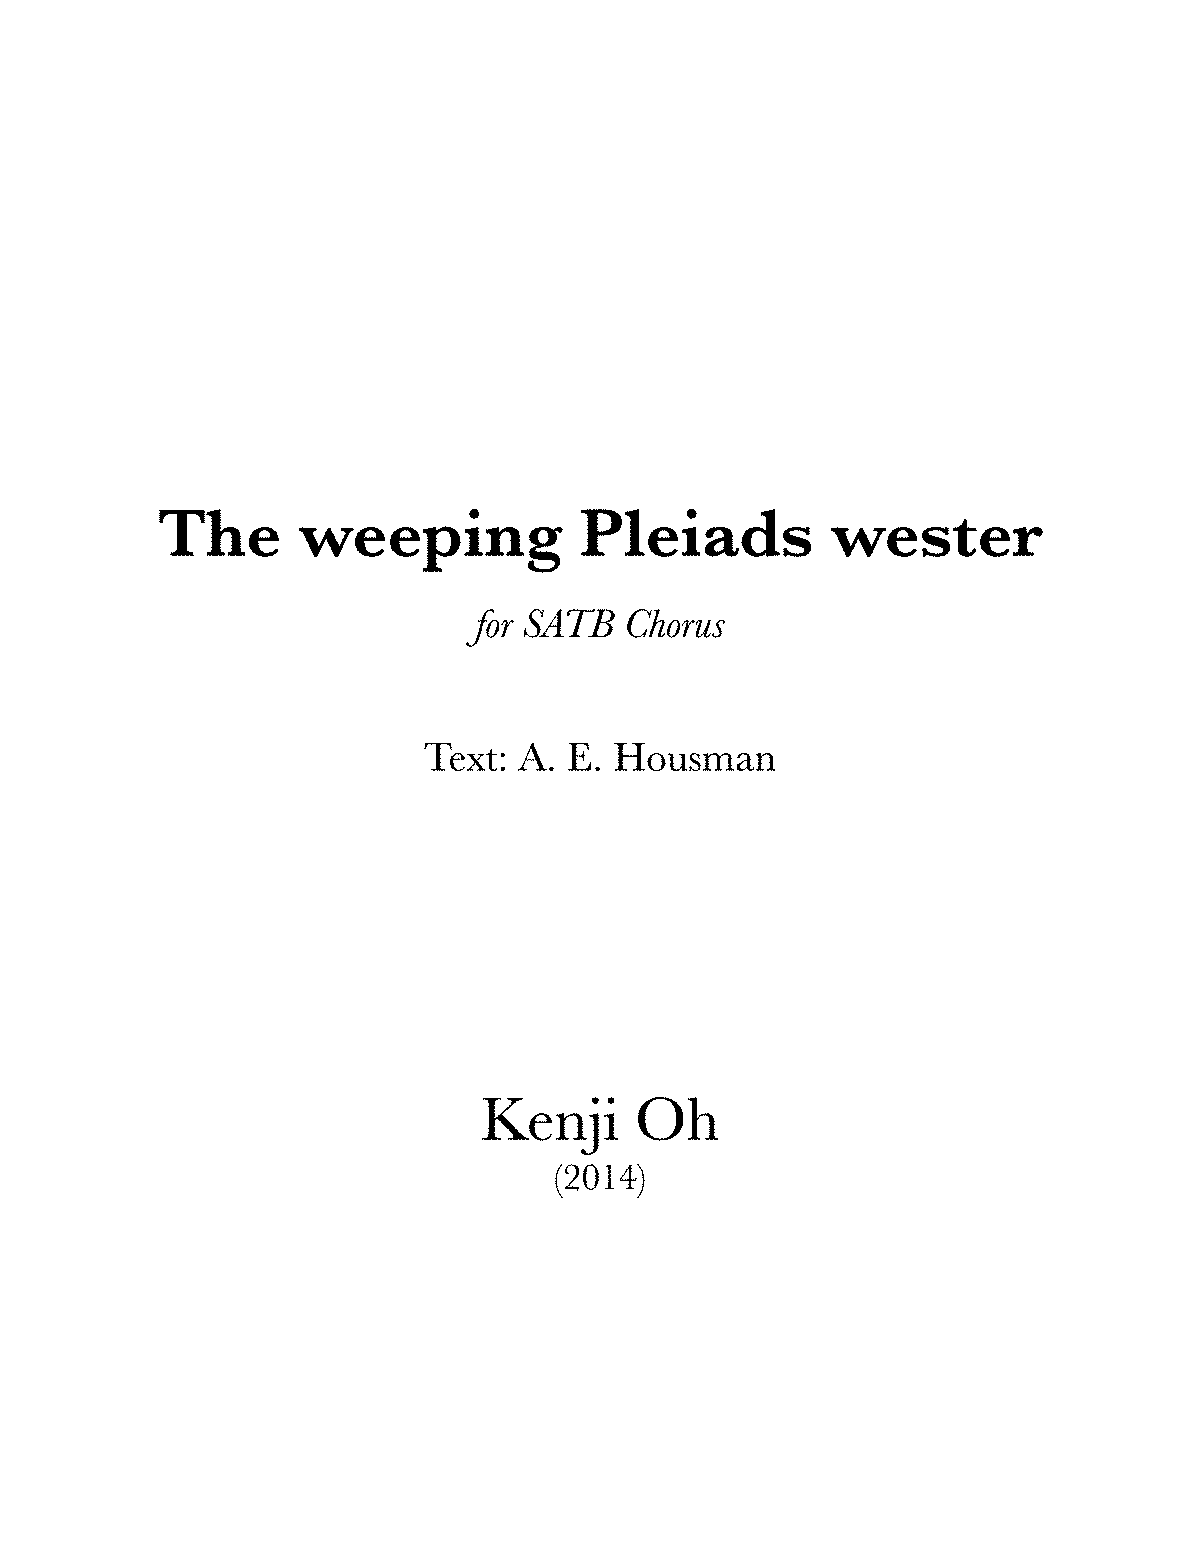 PMLP716079--Kenji Oh- The weeping Pleiads wester for mixed choir.pdf